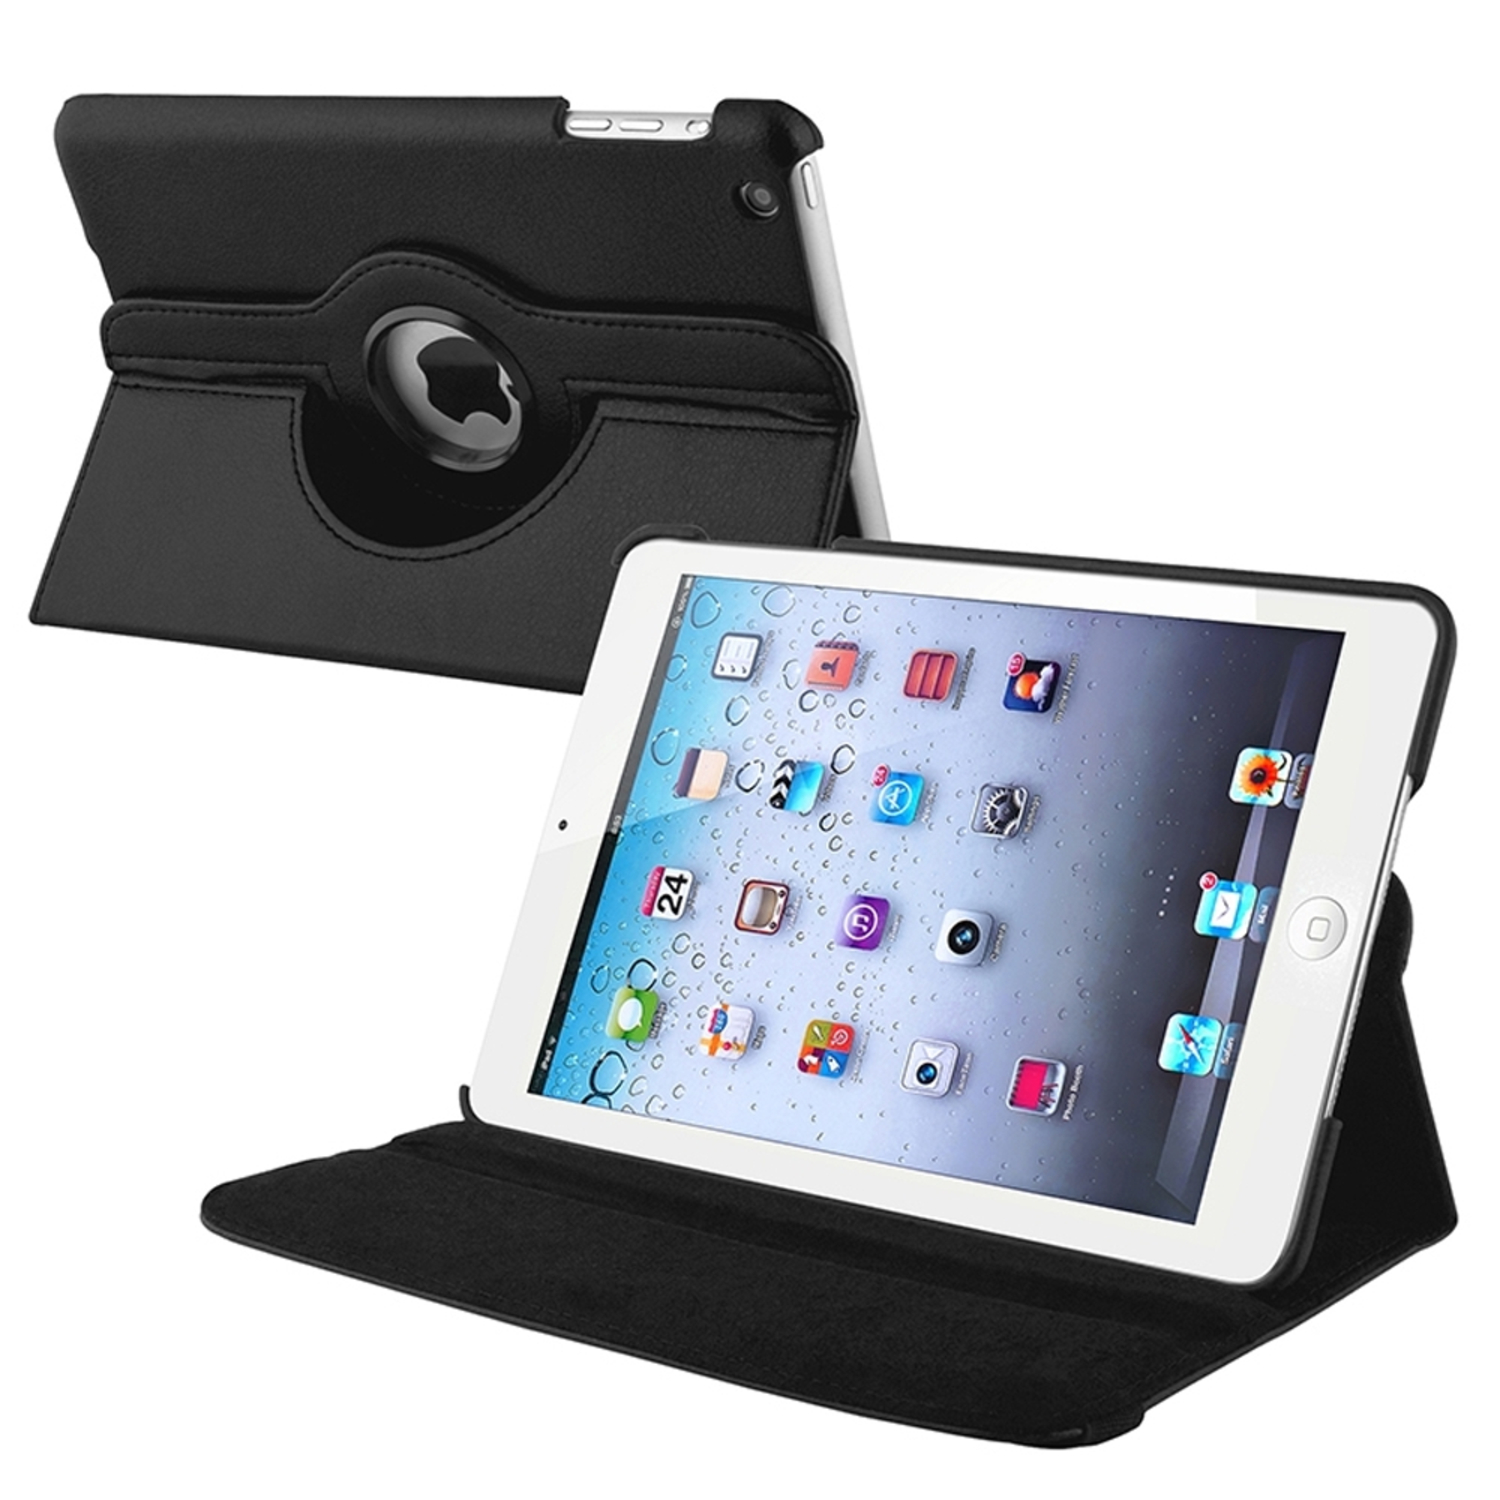 Insten Swivel Stand Folio Flip Leather Case Cover Compatible With Apple iPad Mini 1/2/3, Black PartNumber: 05743778000P KsnValue: 8444843 MfgPartNumber: 809502